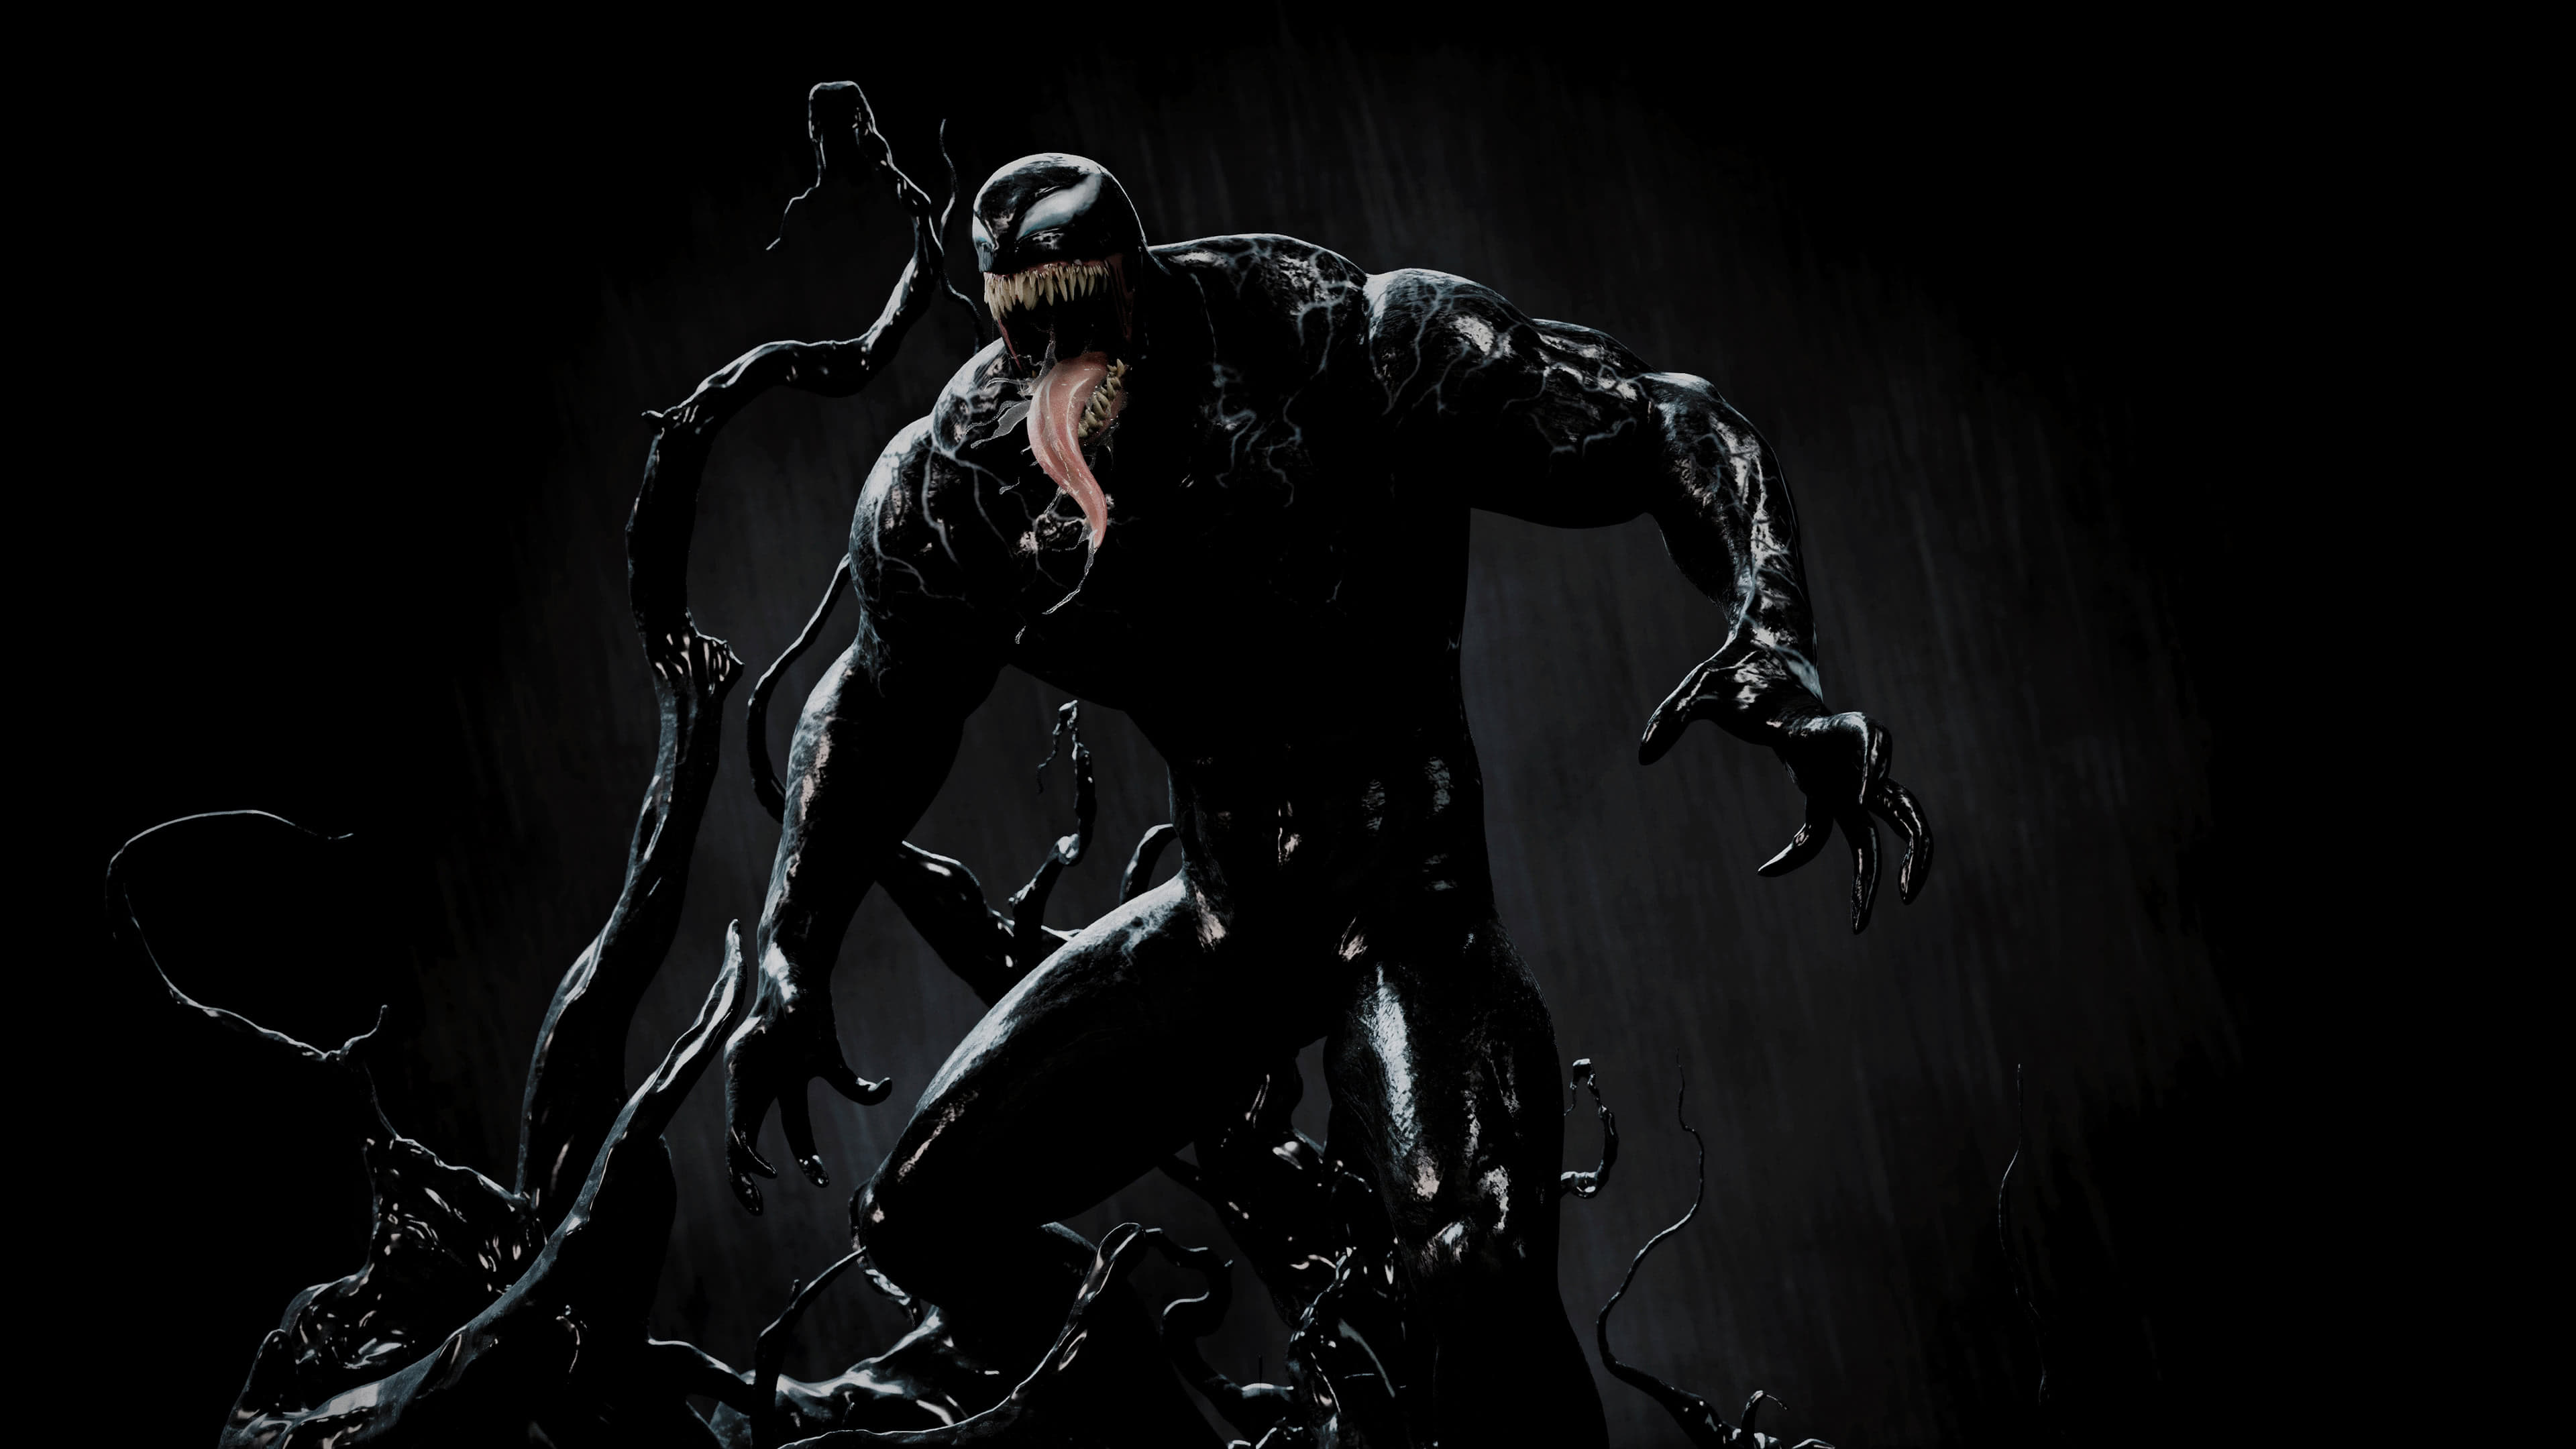 Venom Artwork Uhd 4k Wallpaper Pixelz